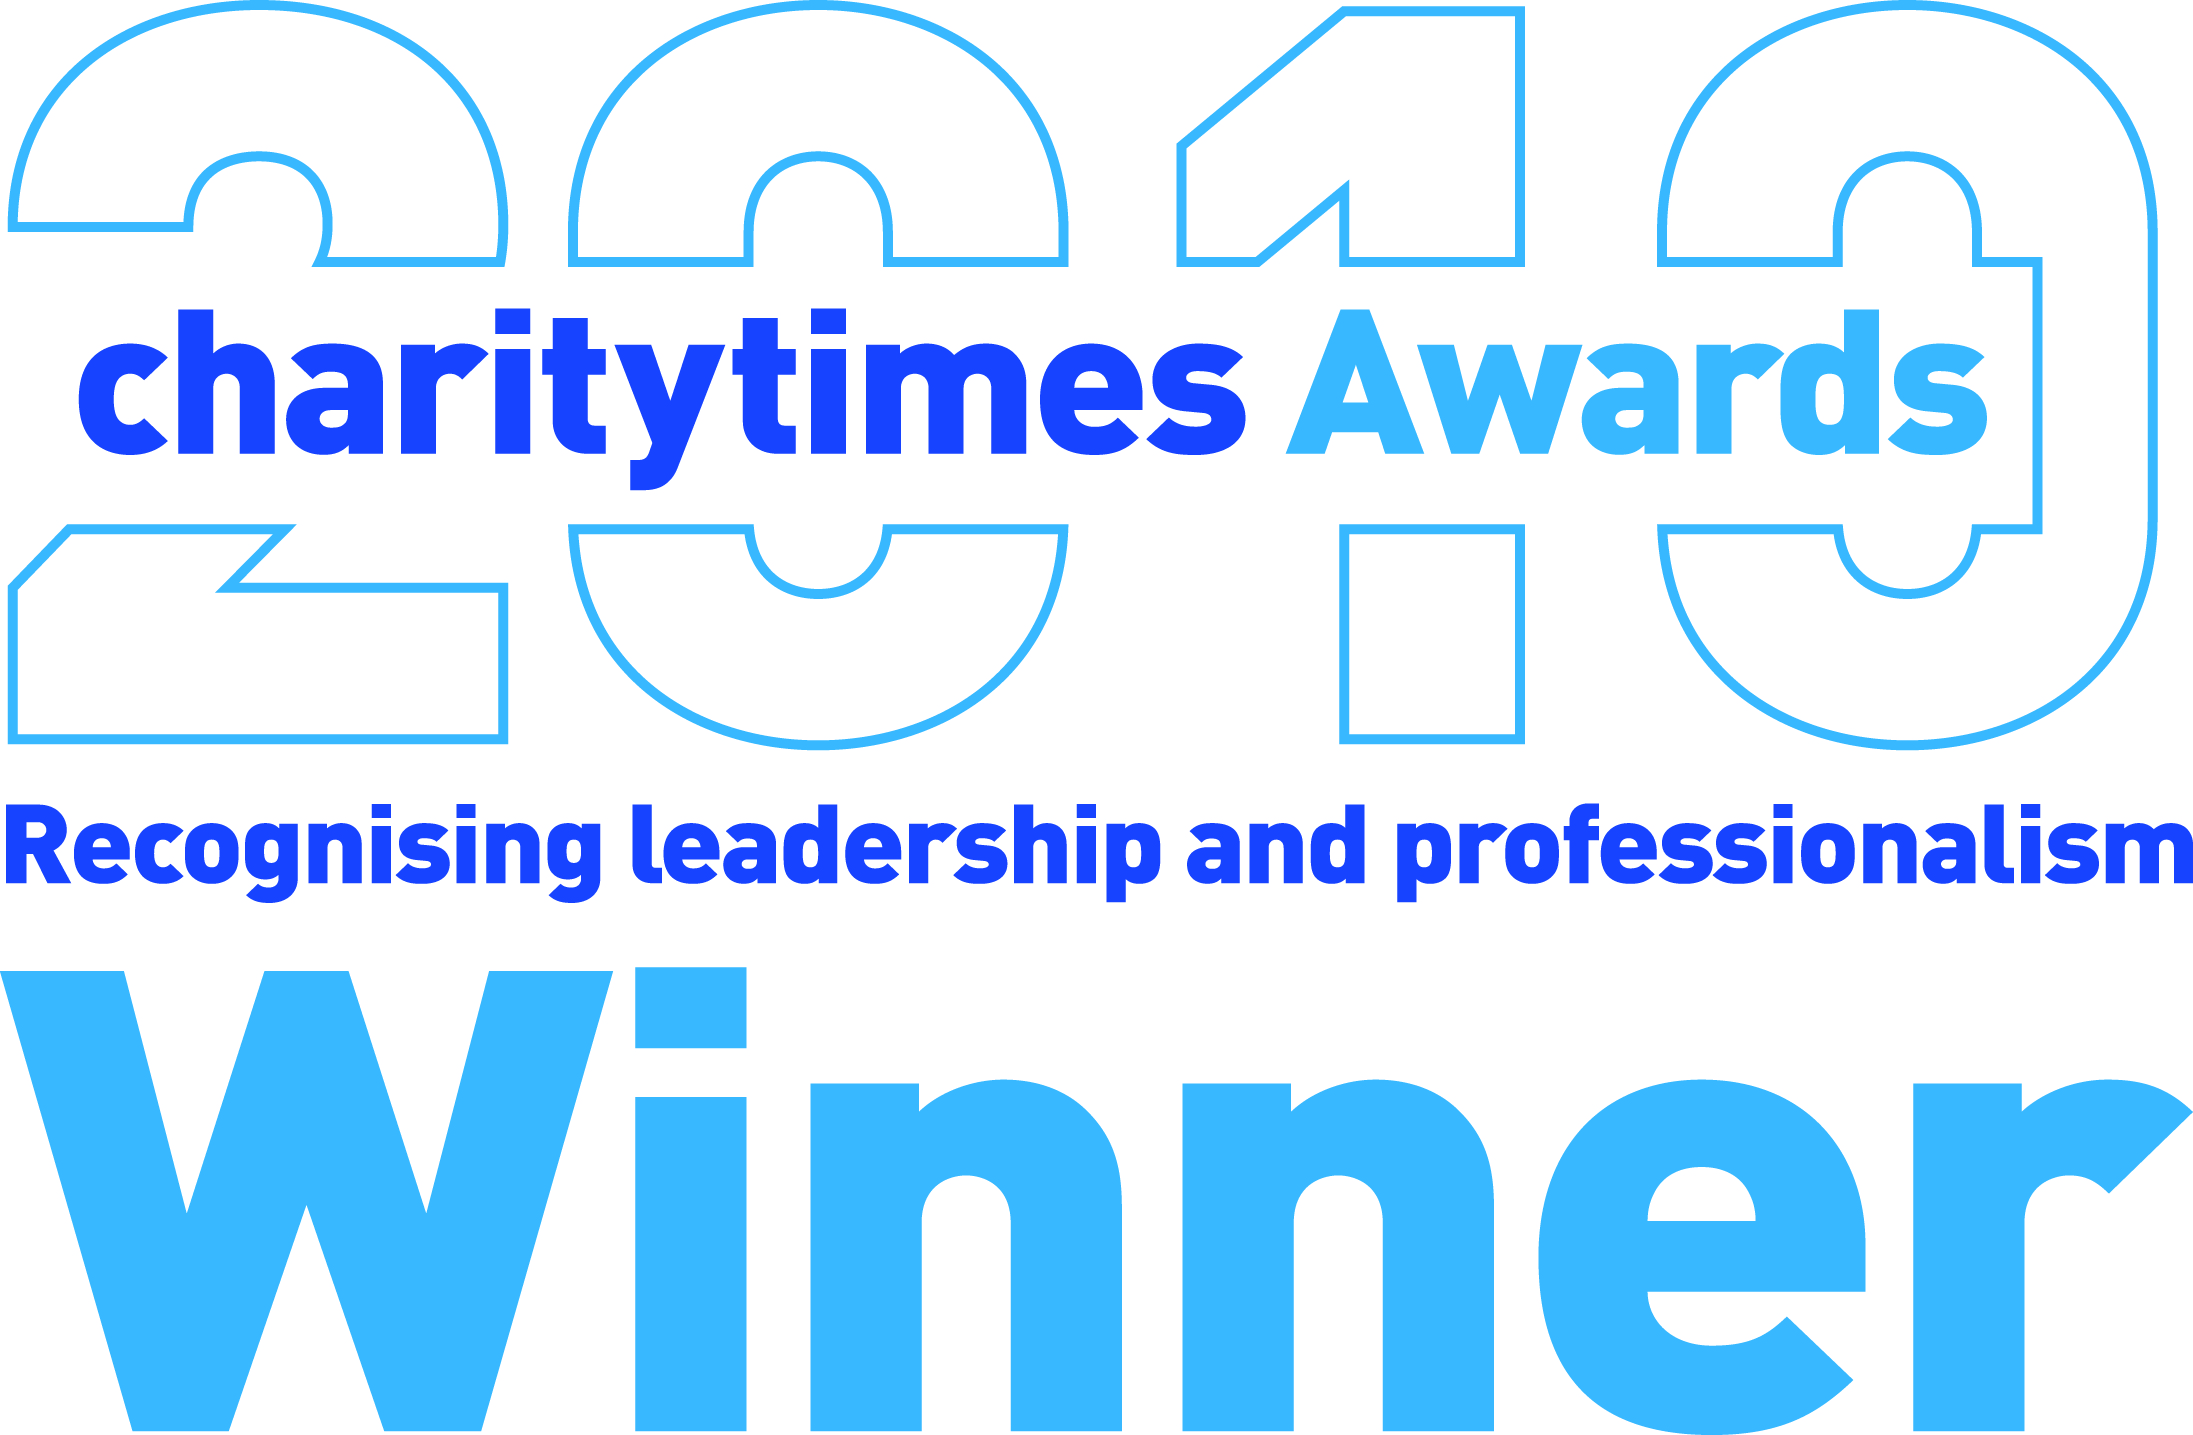 charitytimesawards2010_winner.jpg